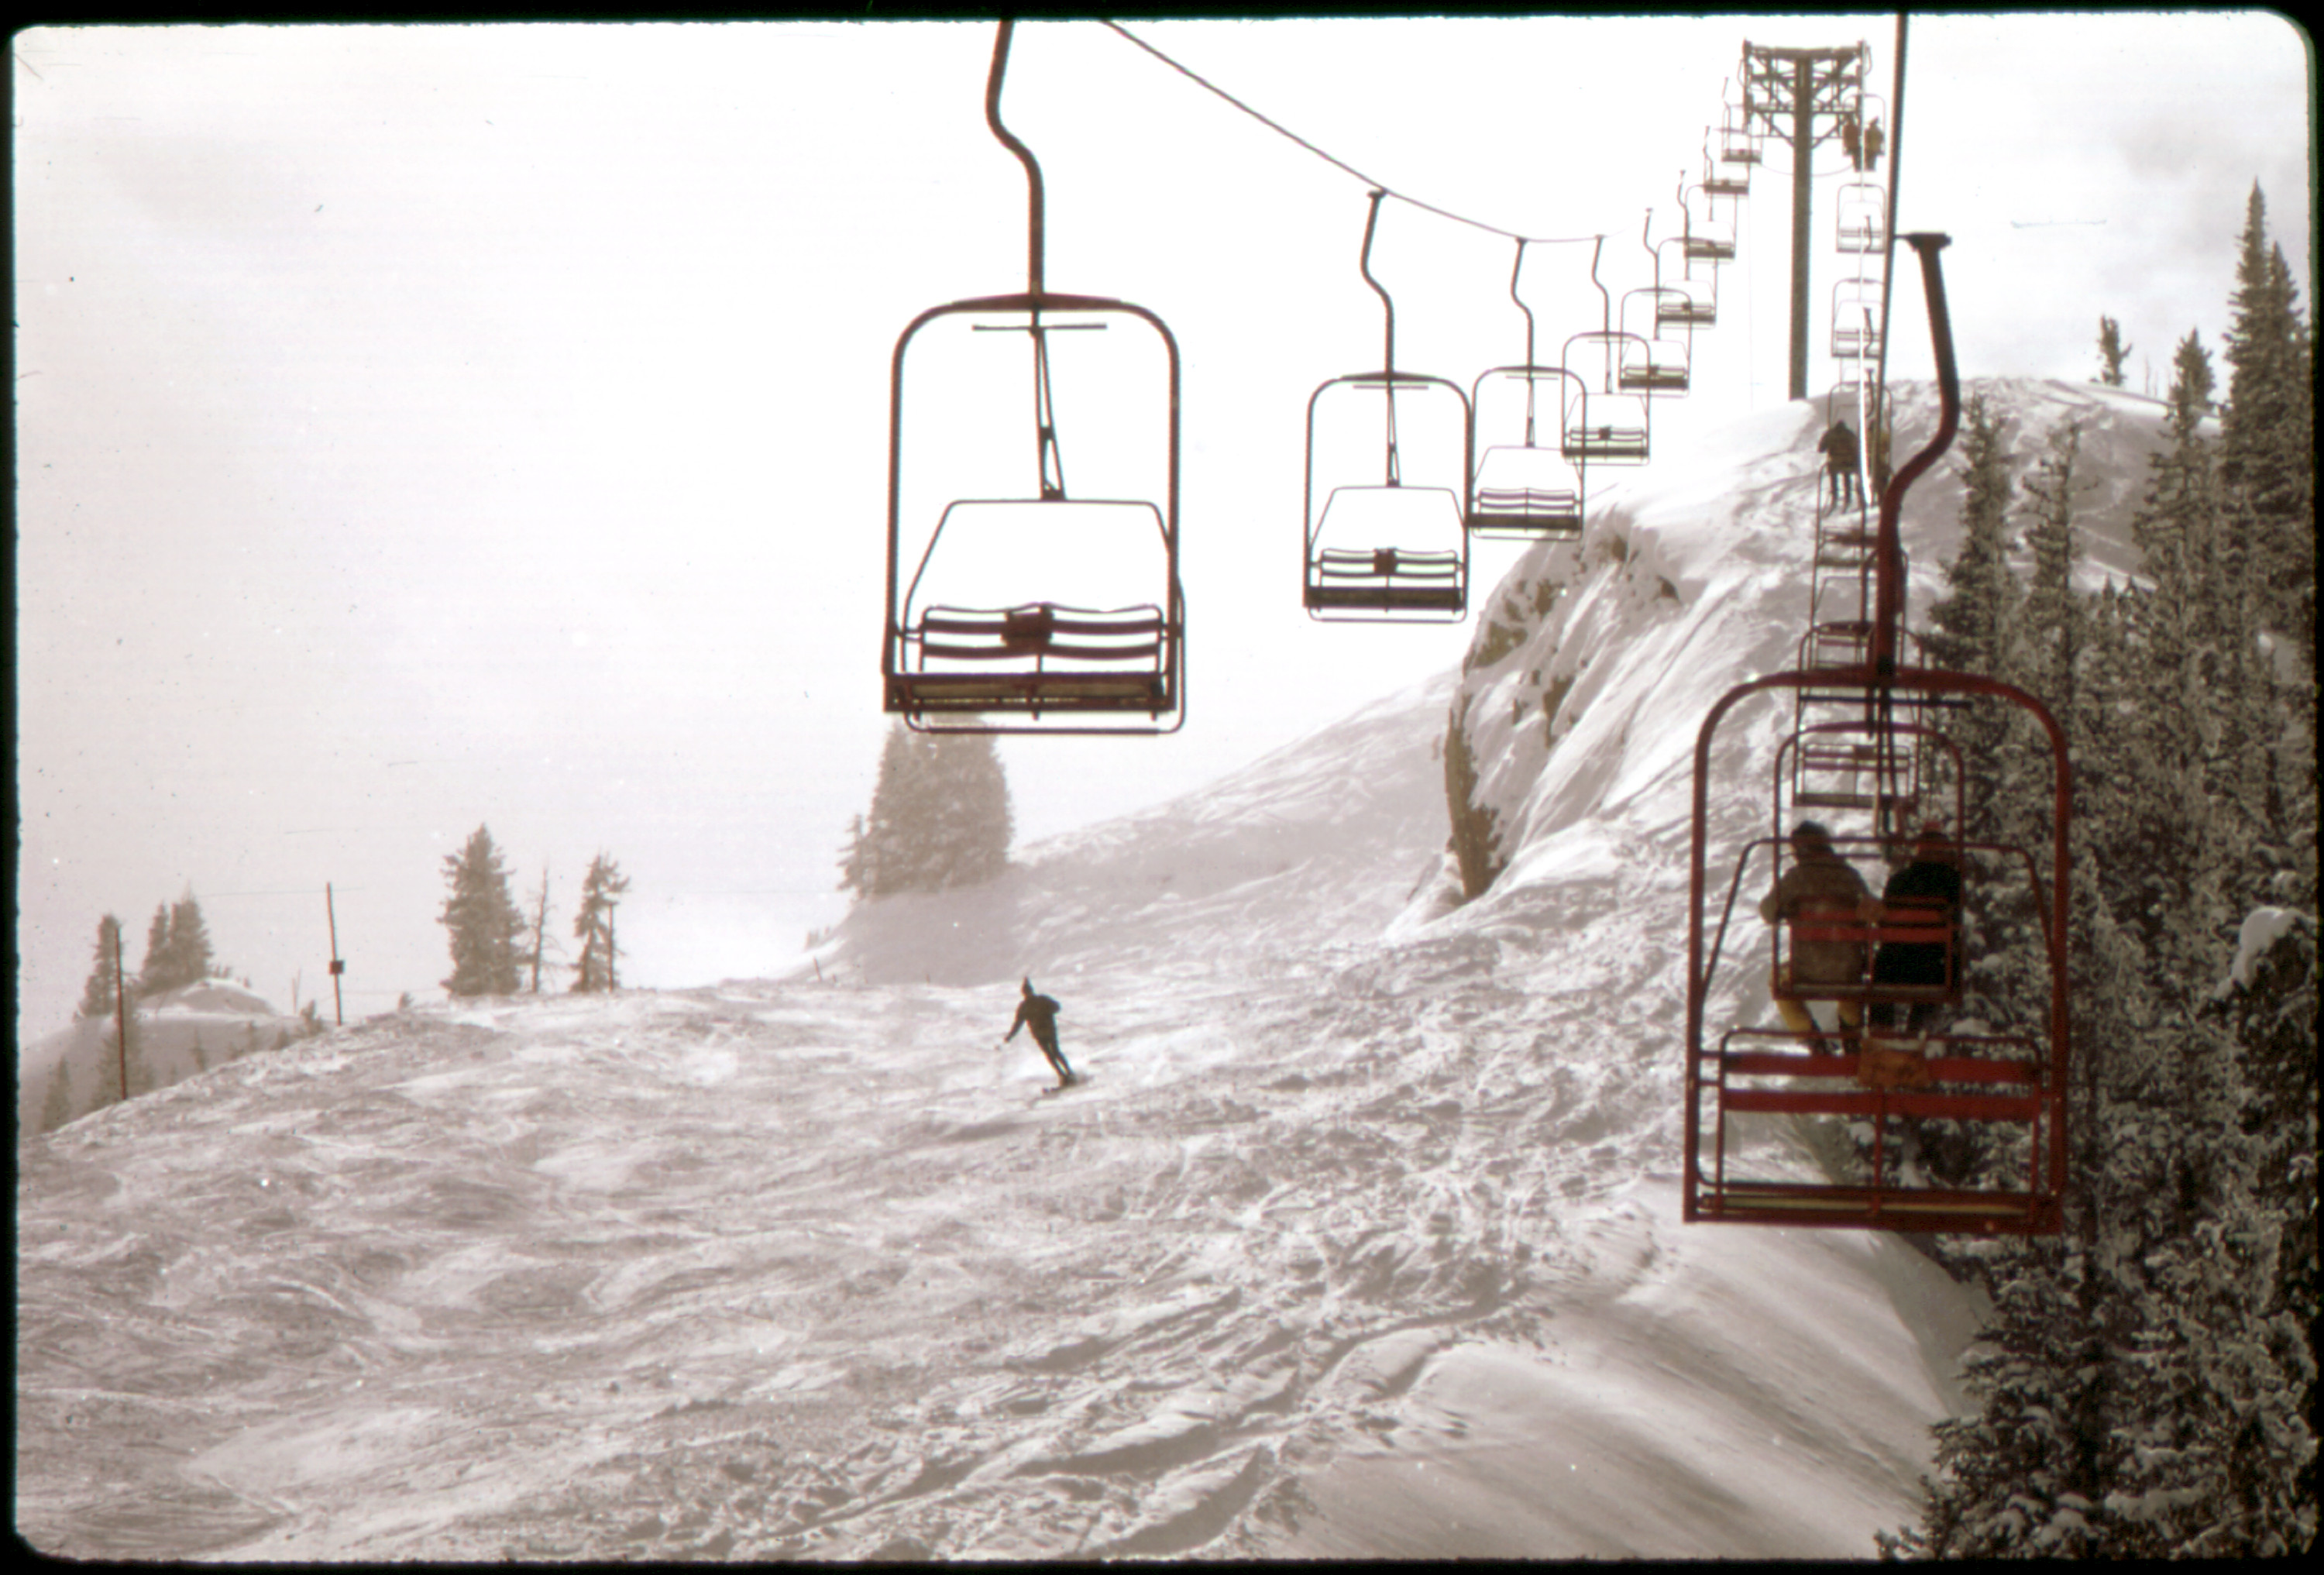 File:Aspen Chairlifts 554248